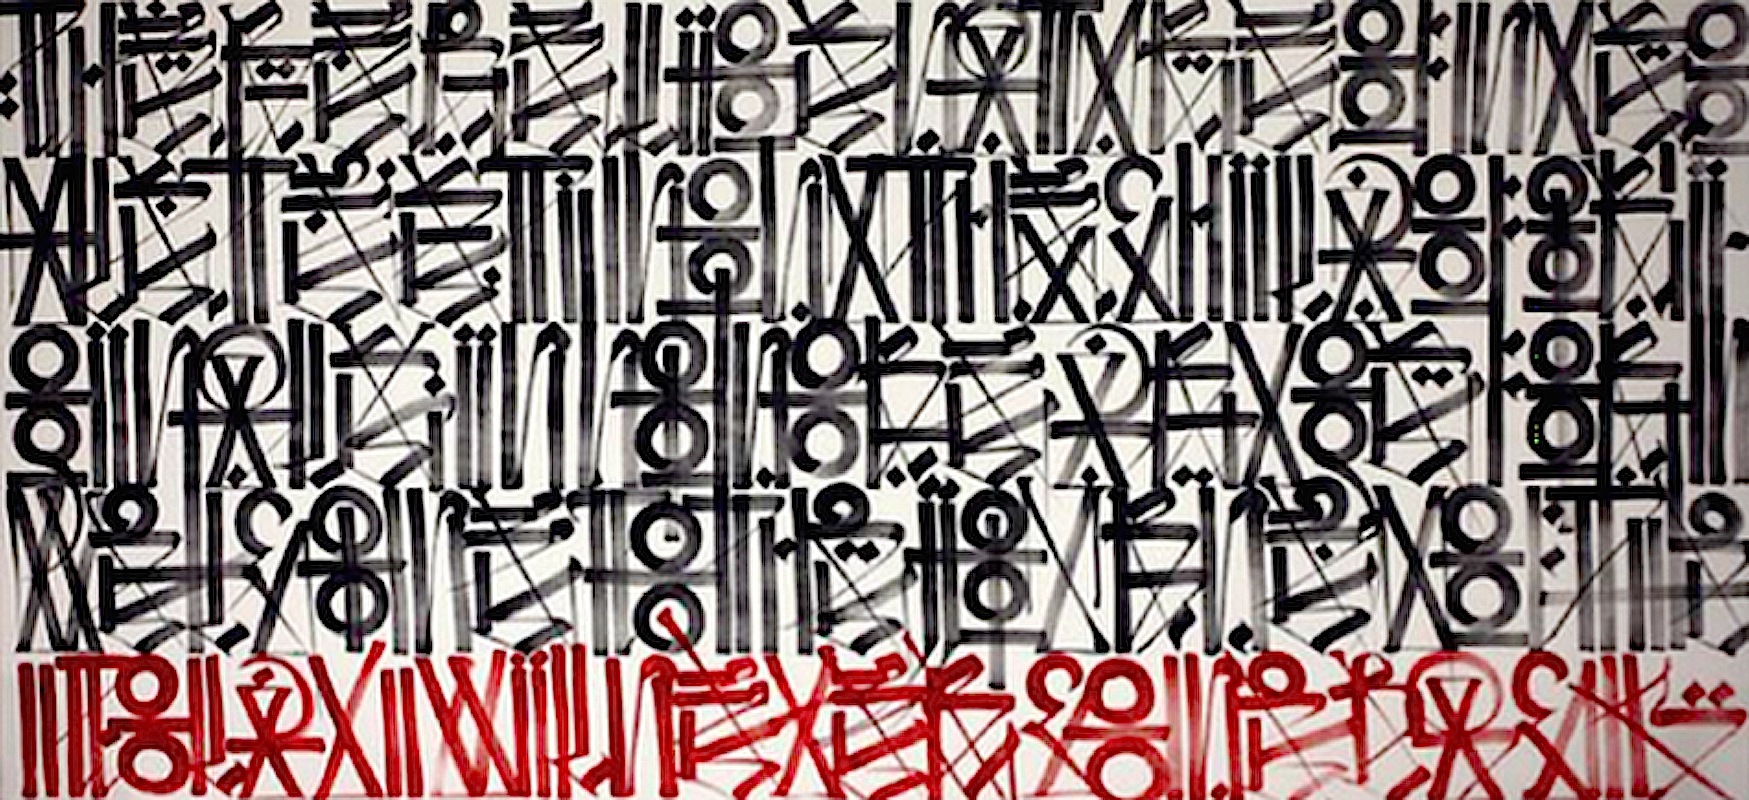 Bottom Line is Red by Retna